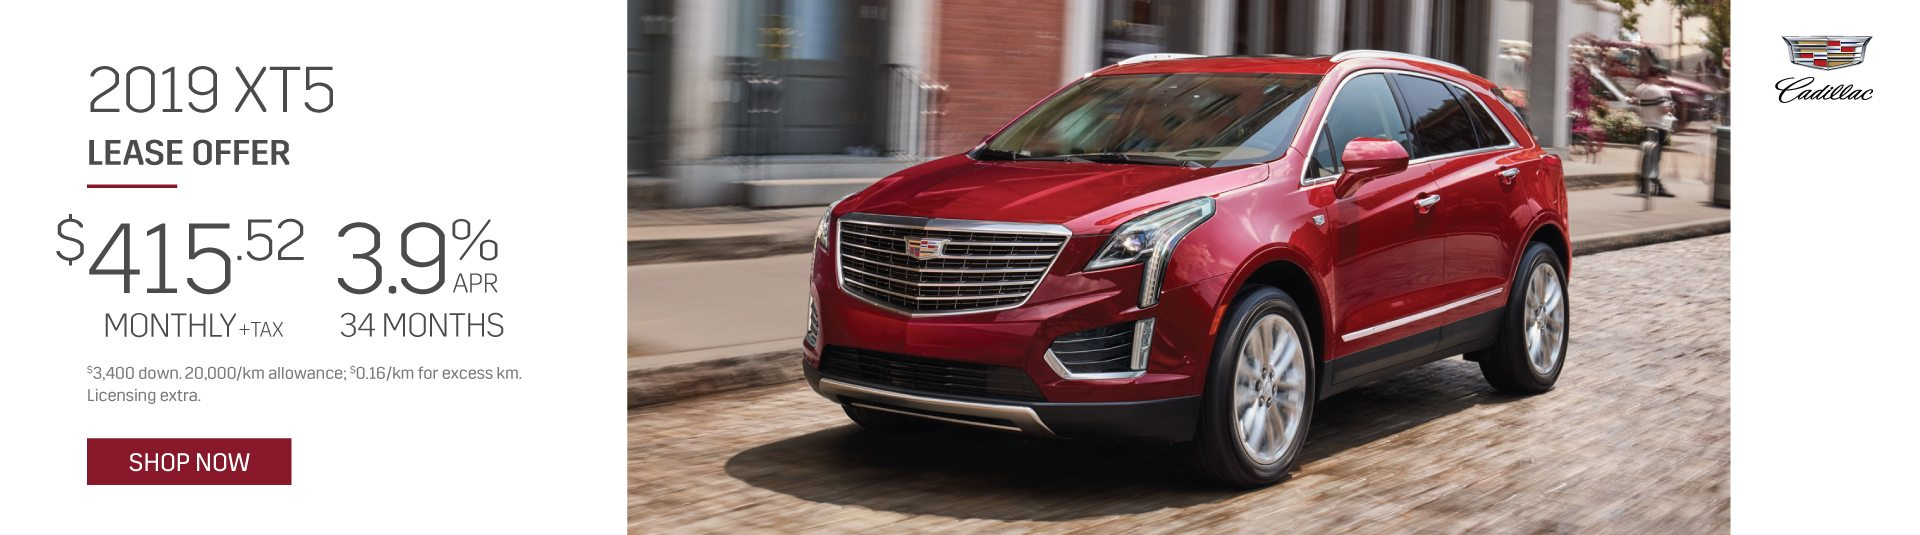 2019 Cadillac XT5 Special Lease Offer in Mississauga